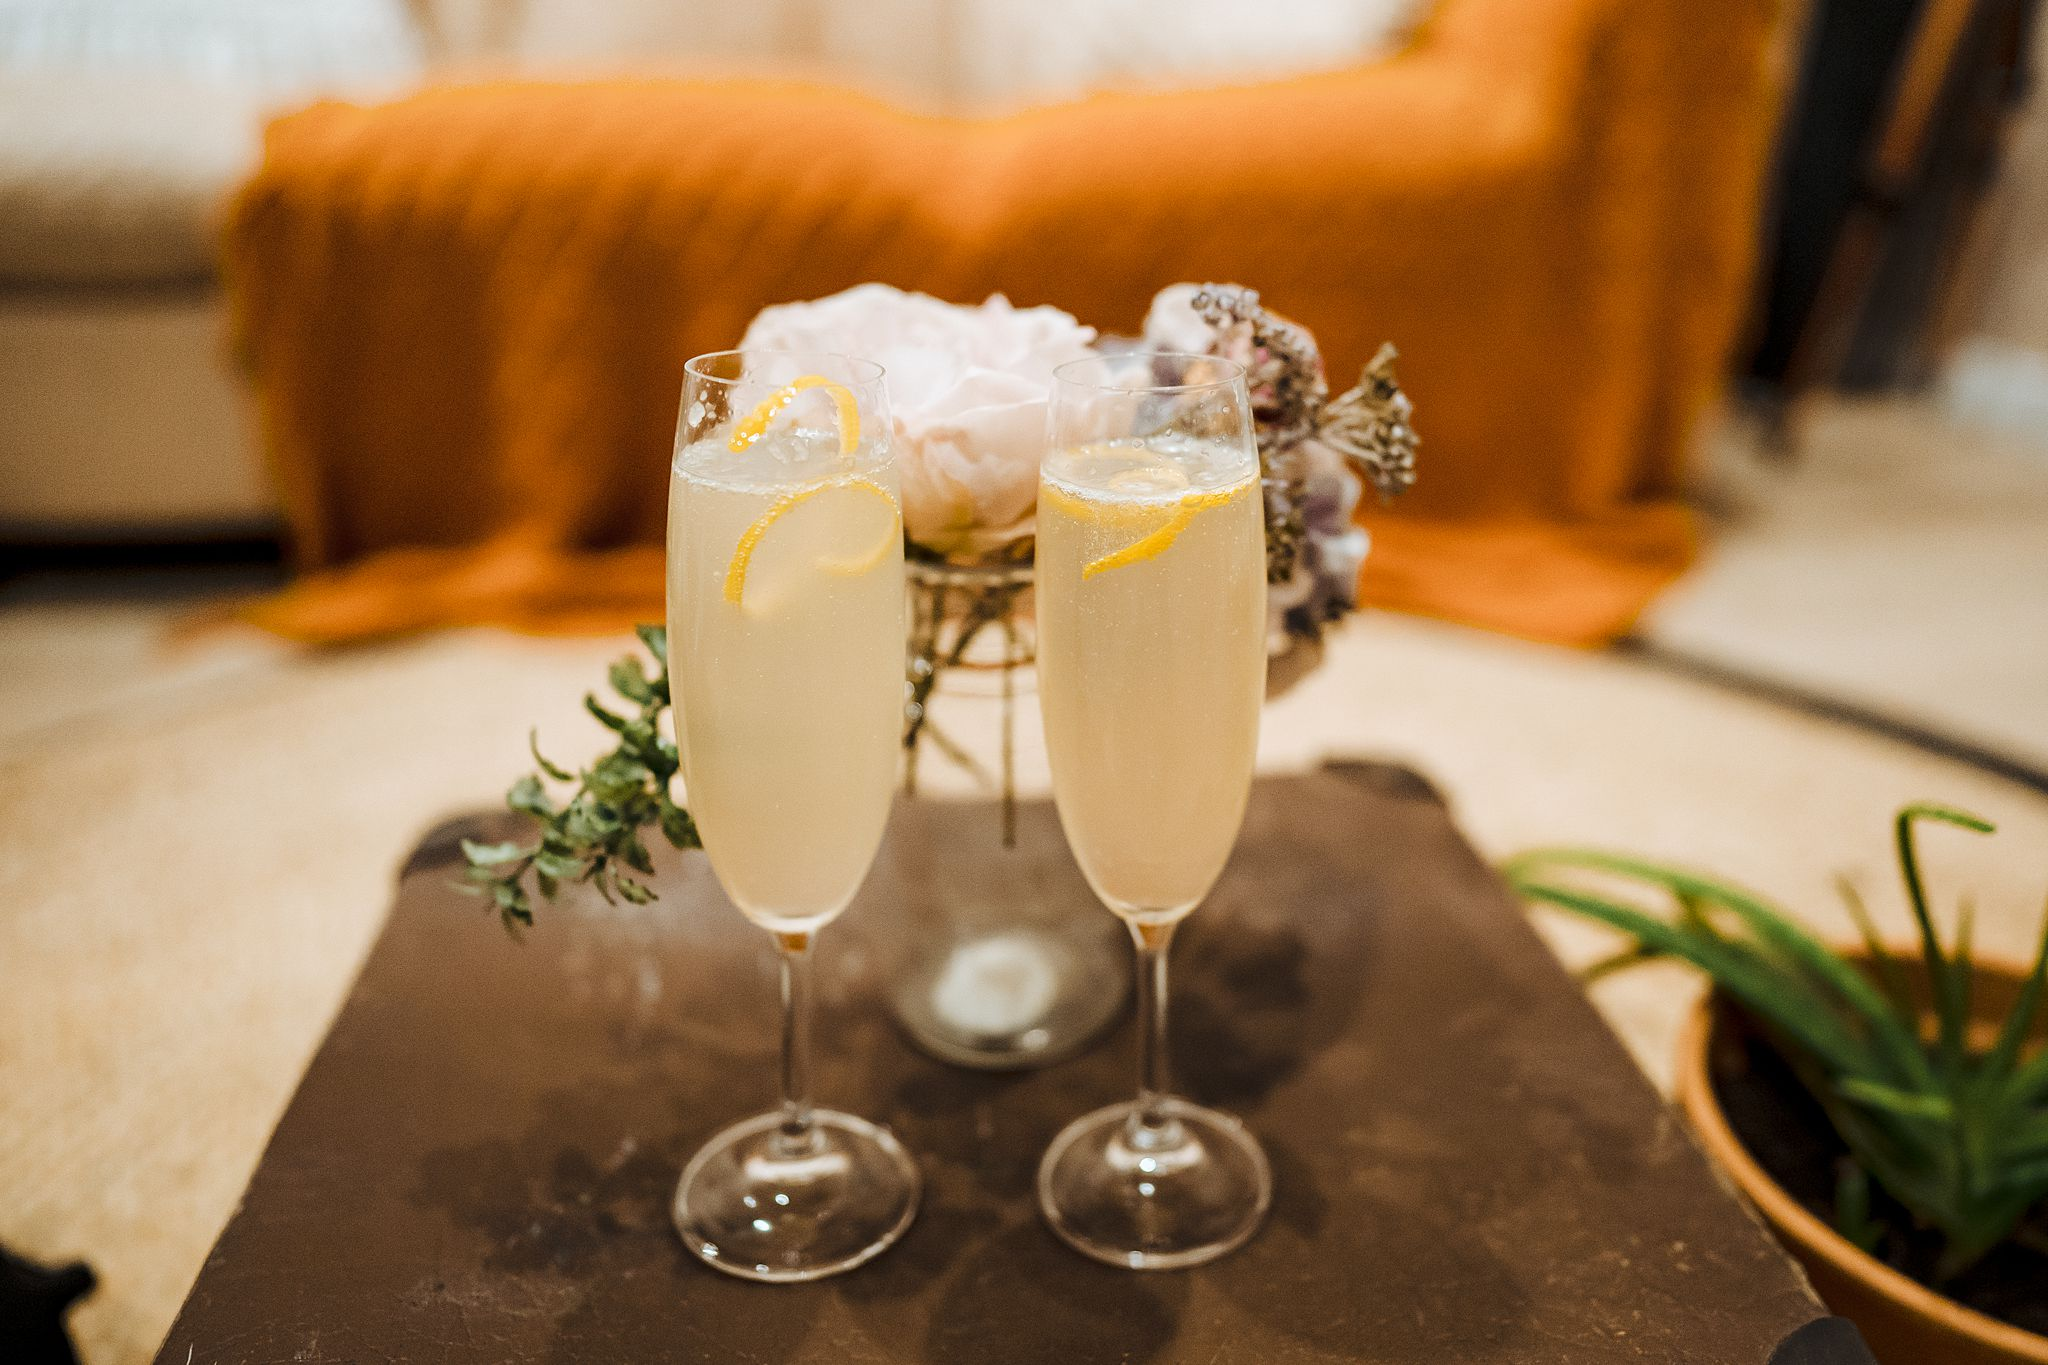 French 75 cocktail made with Queenstown winery bubbles